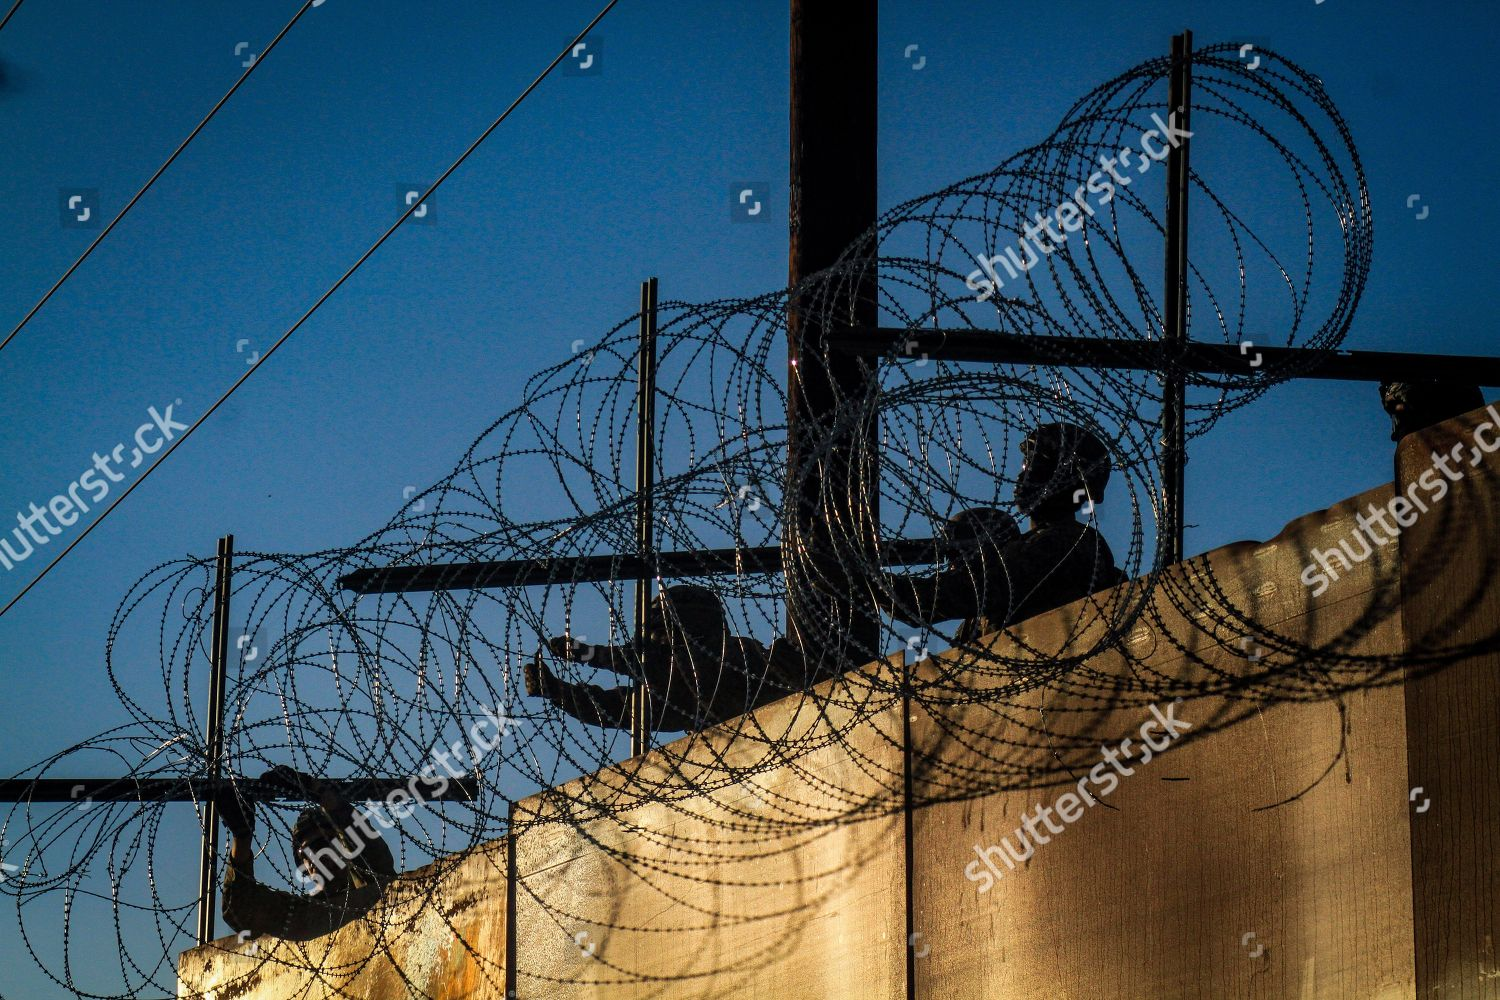 Barbed Wire Fences | Us Military Personell Install Barbed Wire Fences Redaktionelles